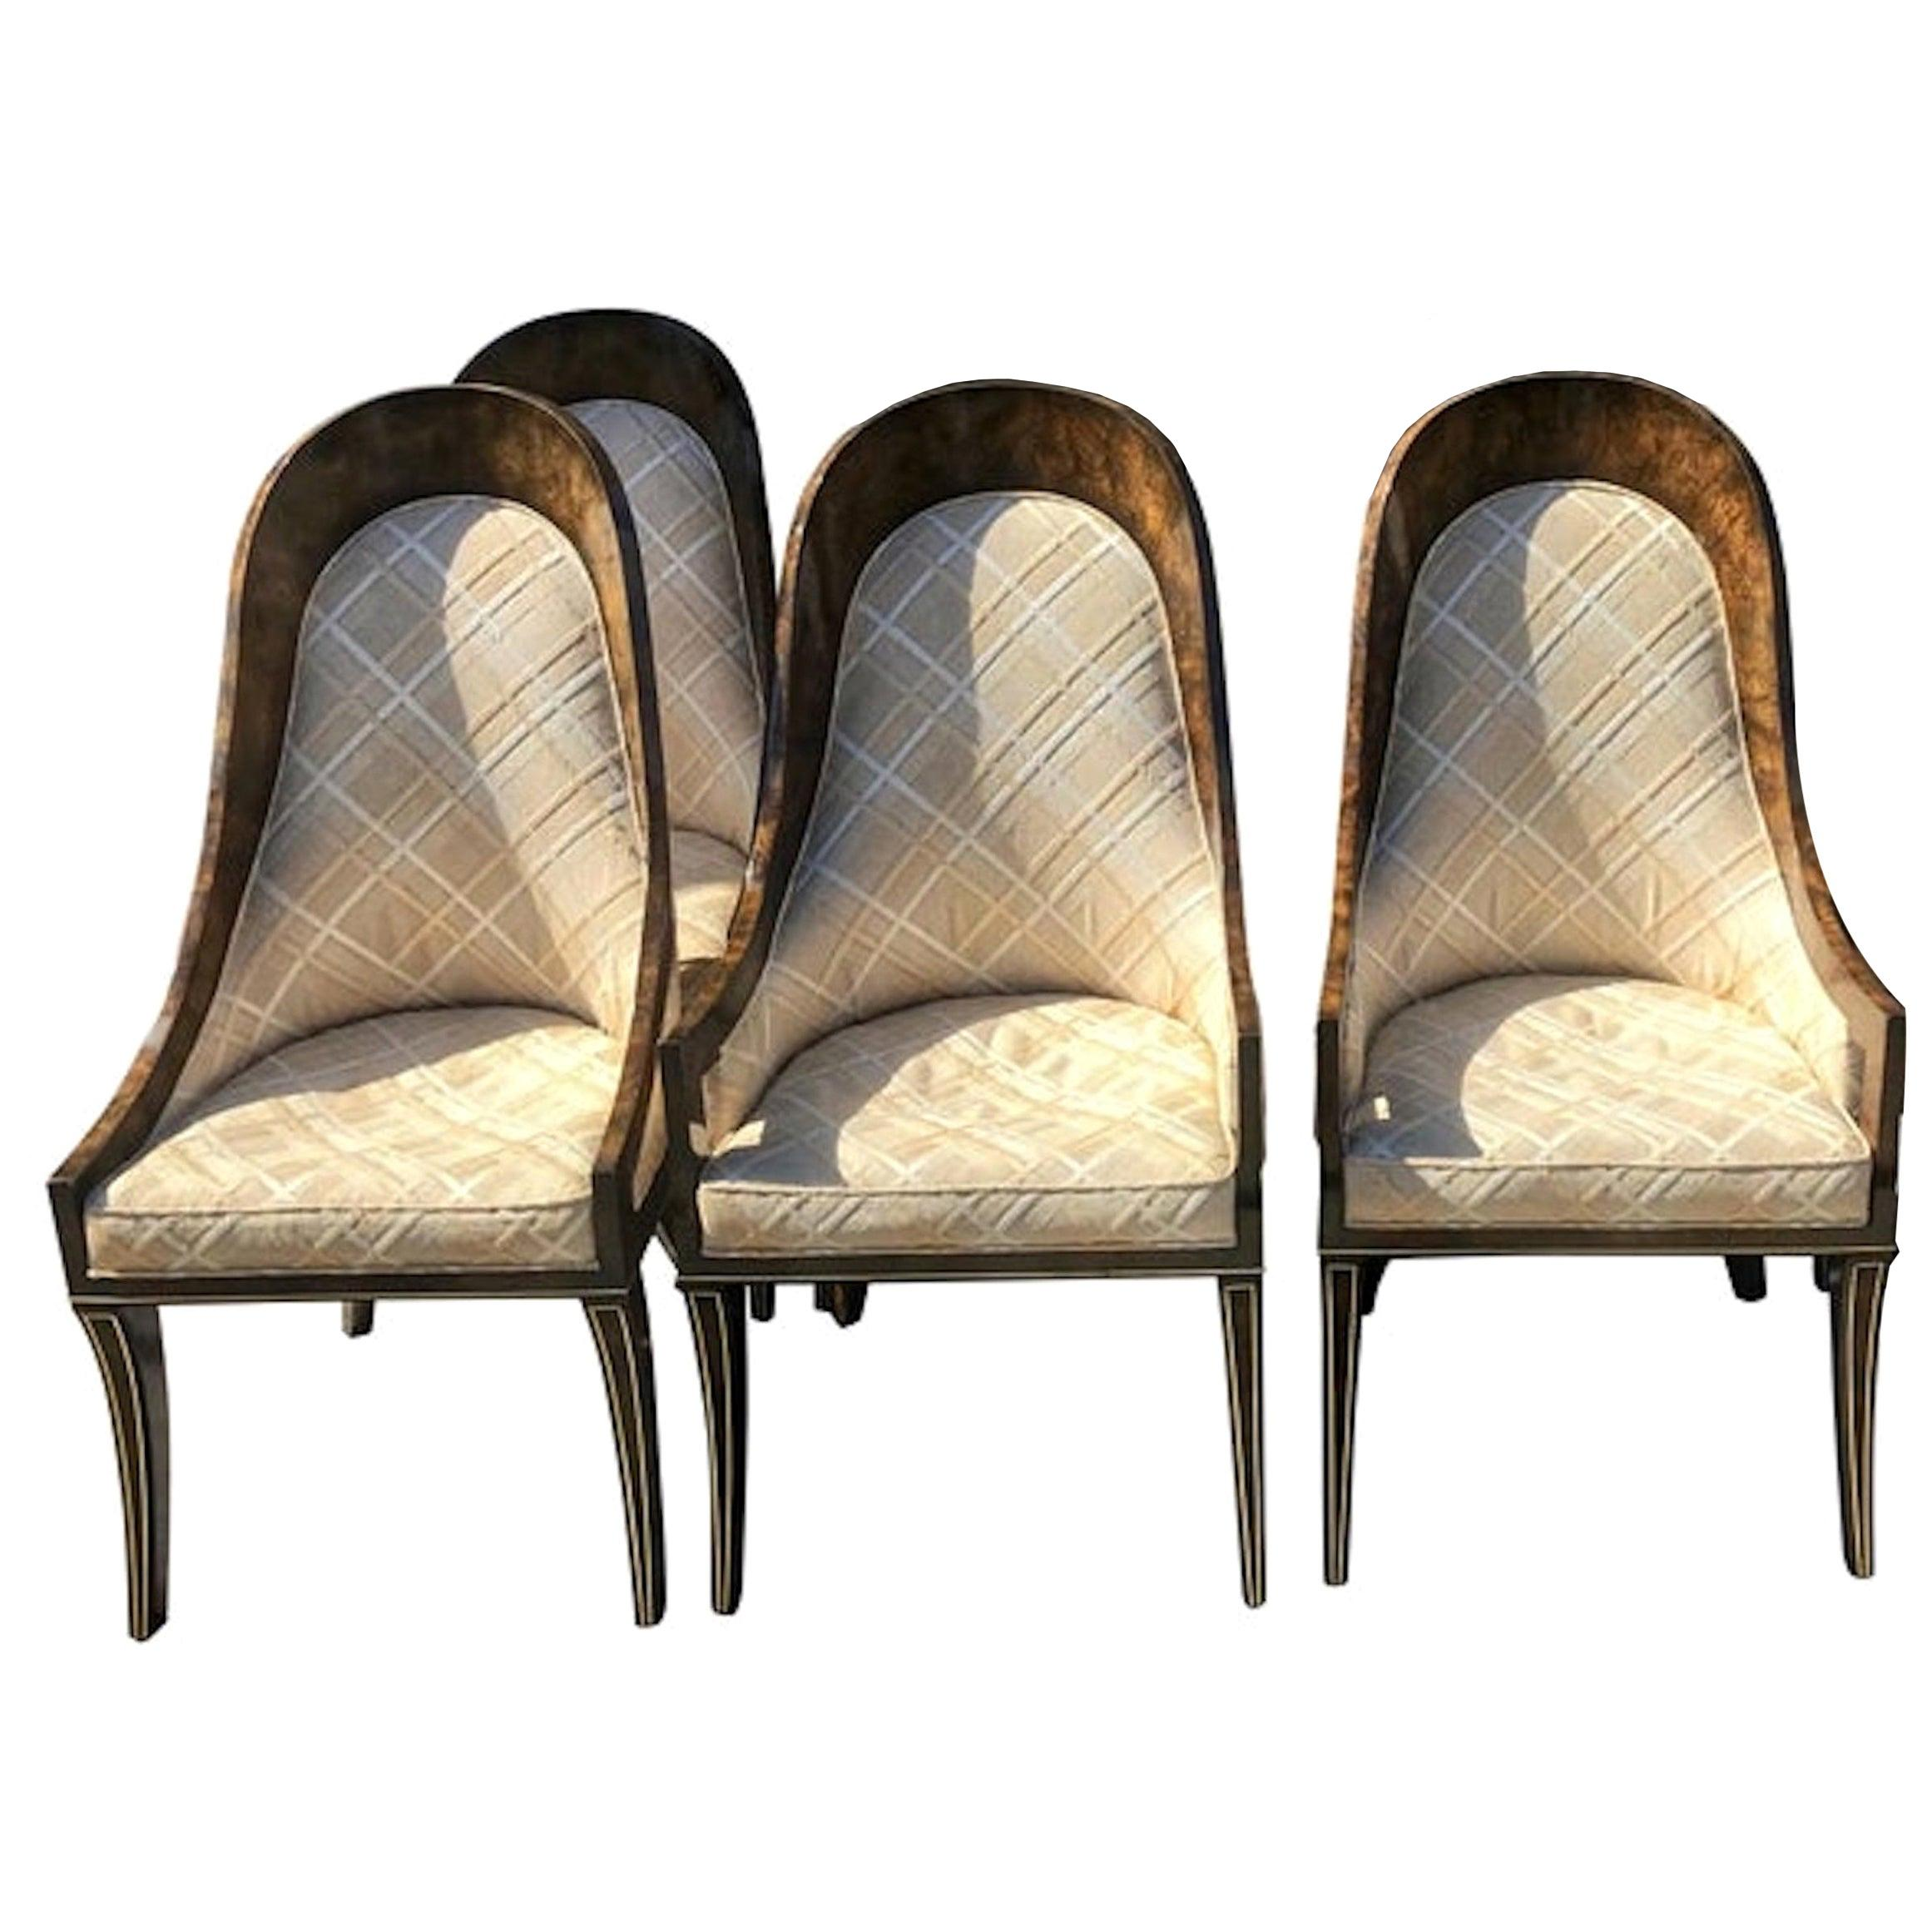 Four Mastercraft Amboyna And Brass Spoon Back Dining Room Chairs